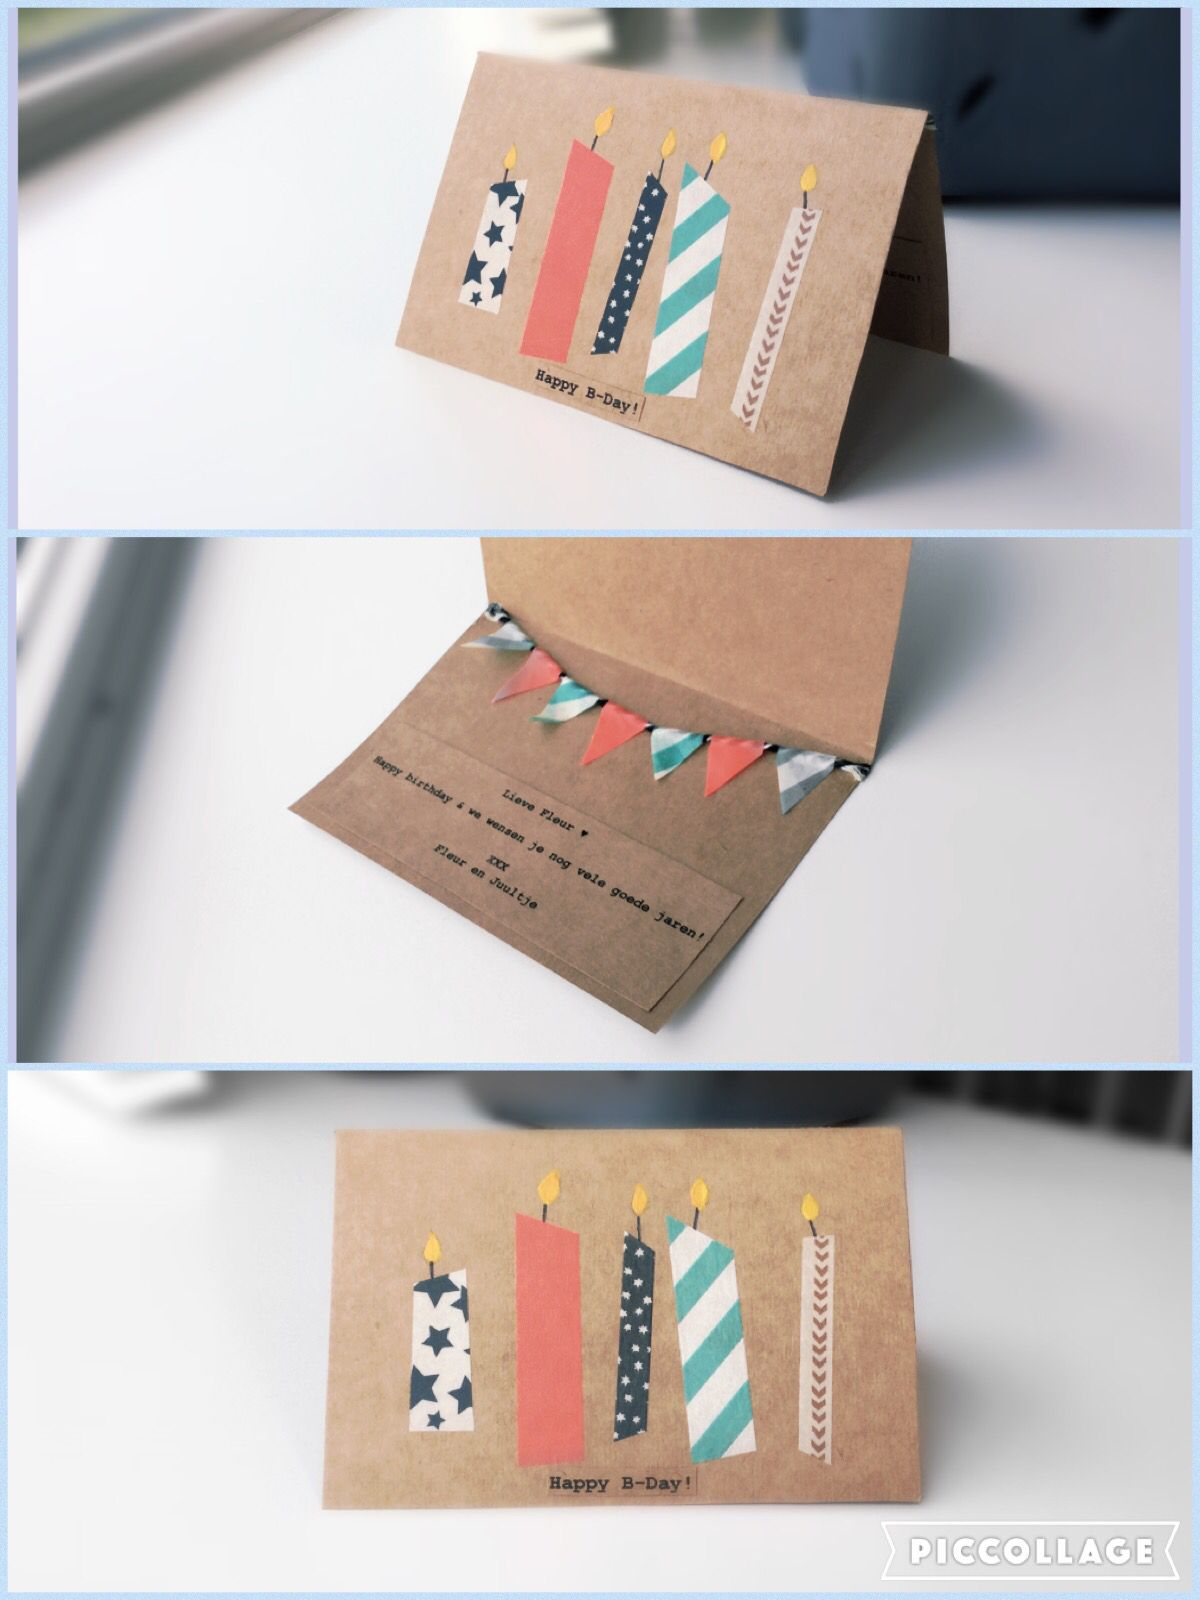 Beautiful Make Your Own Birthday Card Ideas Part - 3: Make Your Own Birthday Card - DIY - Washi Tape ?